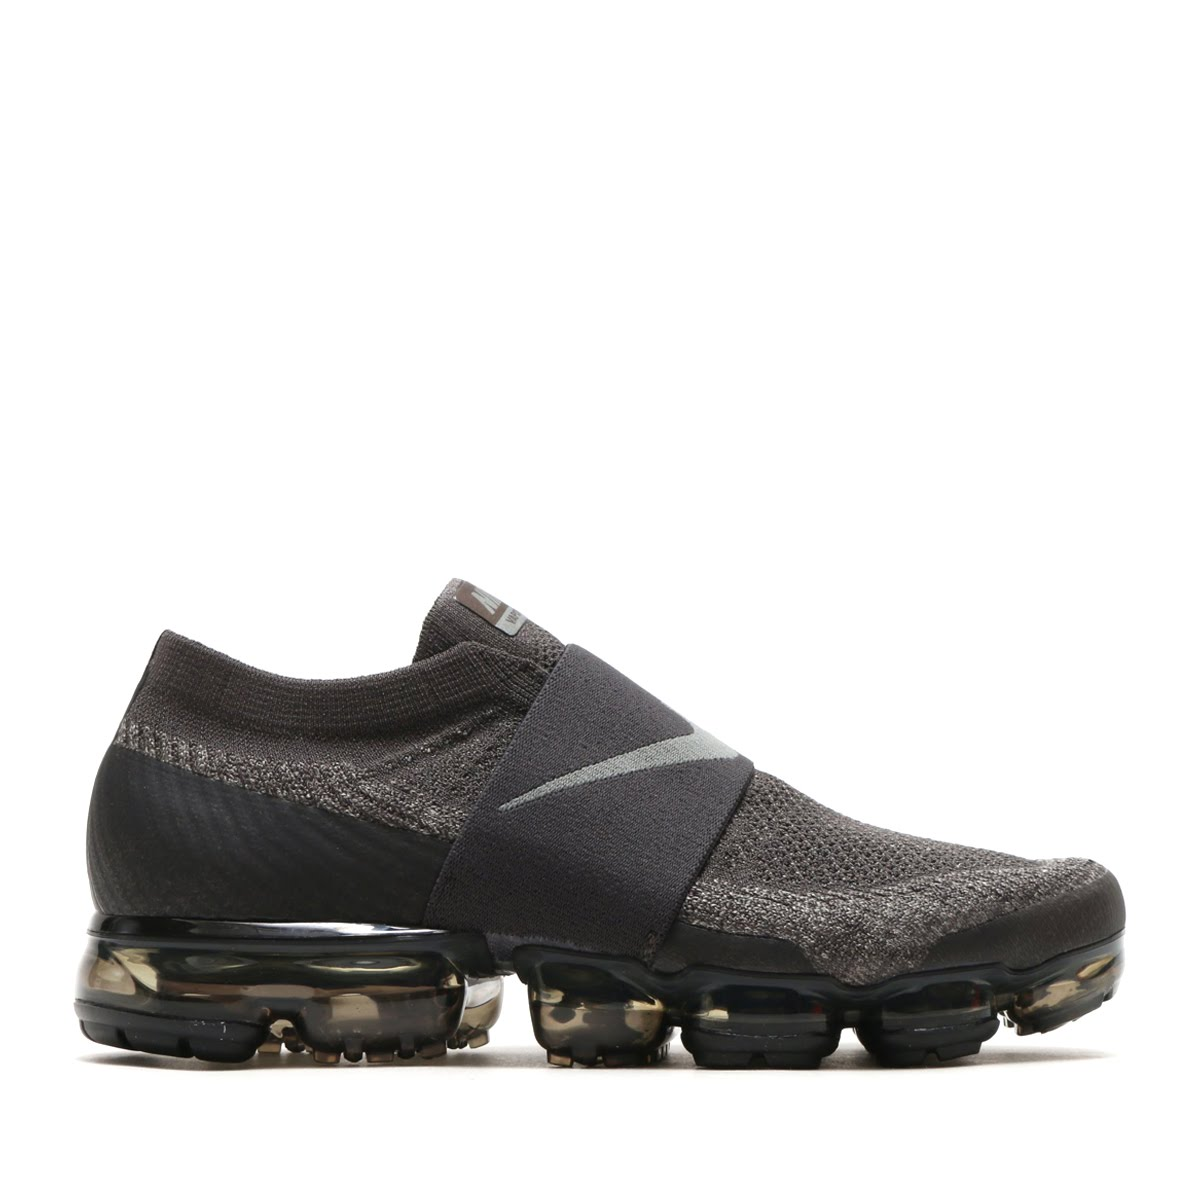 e5aef37dc1e NIKE AIR VAPORMAX FLYKNIT MOC (Nike air vapor max fried food knit mock) (MIDNIGHT  FOG DARK STUCCO-LEGION GREEN) 18SP-S